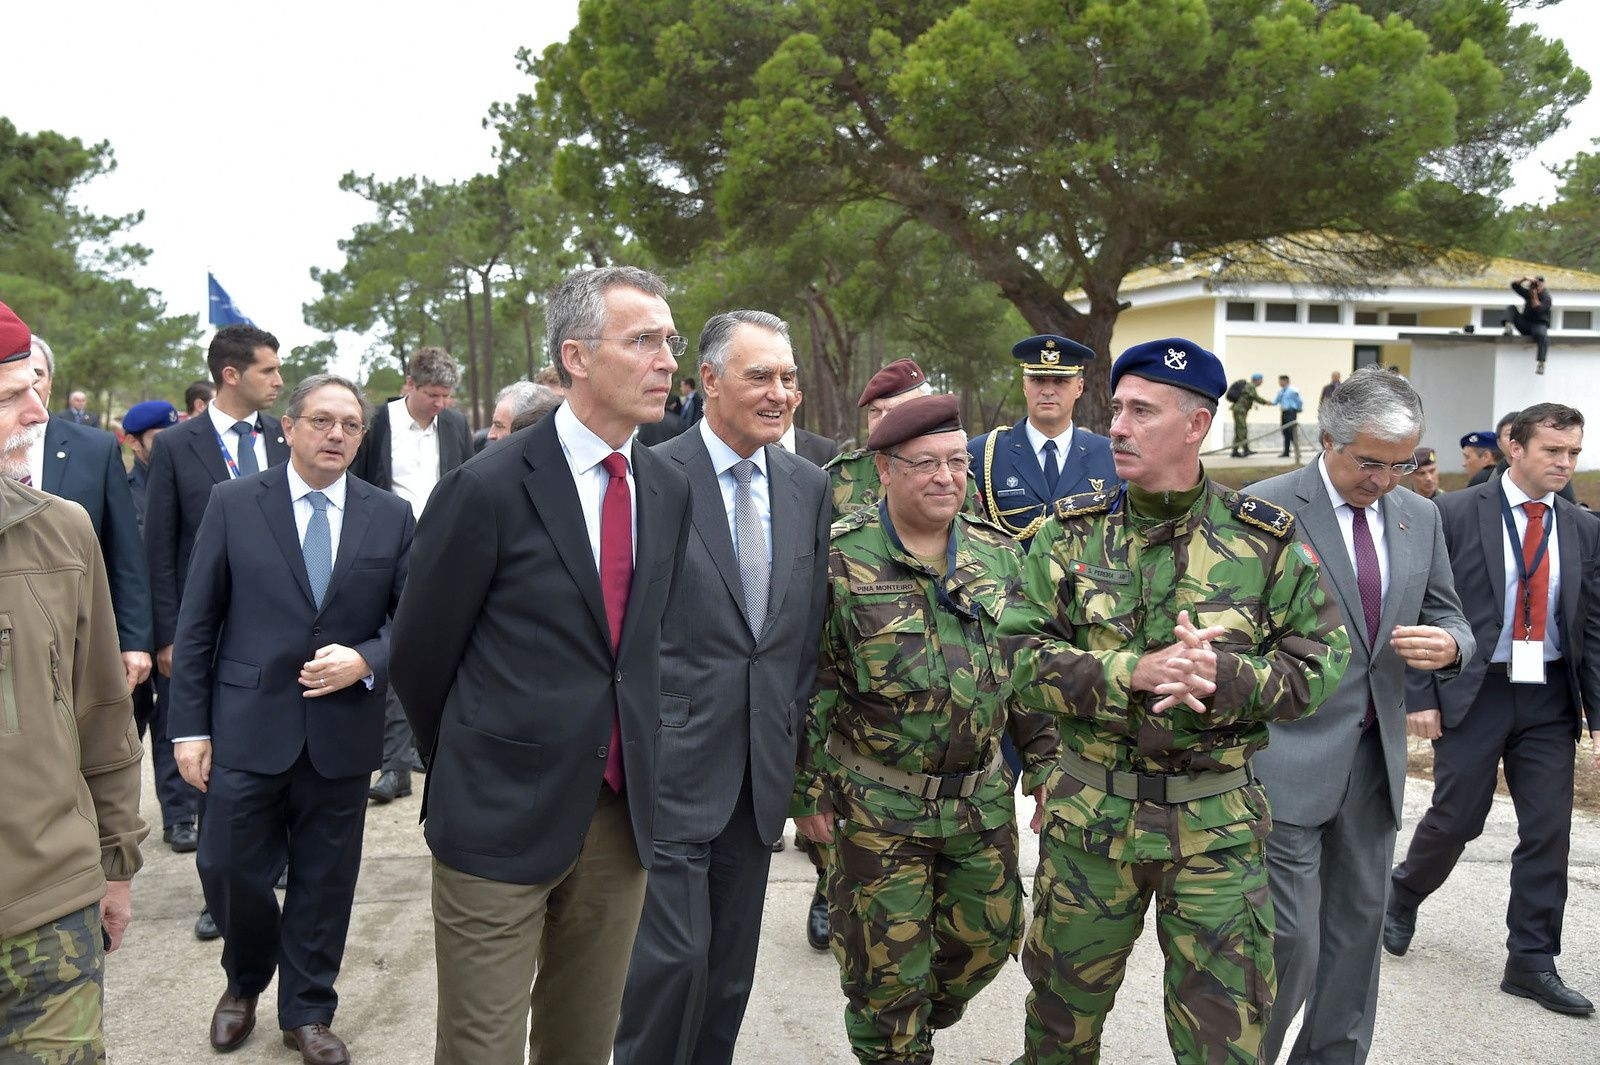 NATO Secretary General Jens Stoltenberg accompanied by the President of Portugal, Anibal Cavaco Silva and General Artur Neves Pina Monteiro, Chief of Defence of Portugal - photo Nato